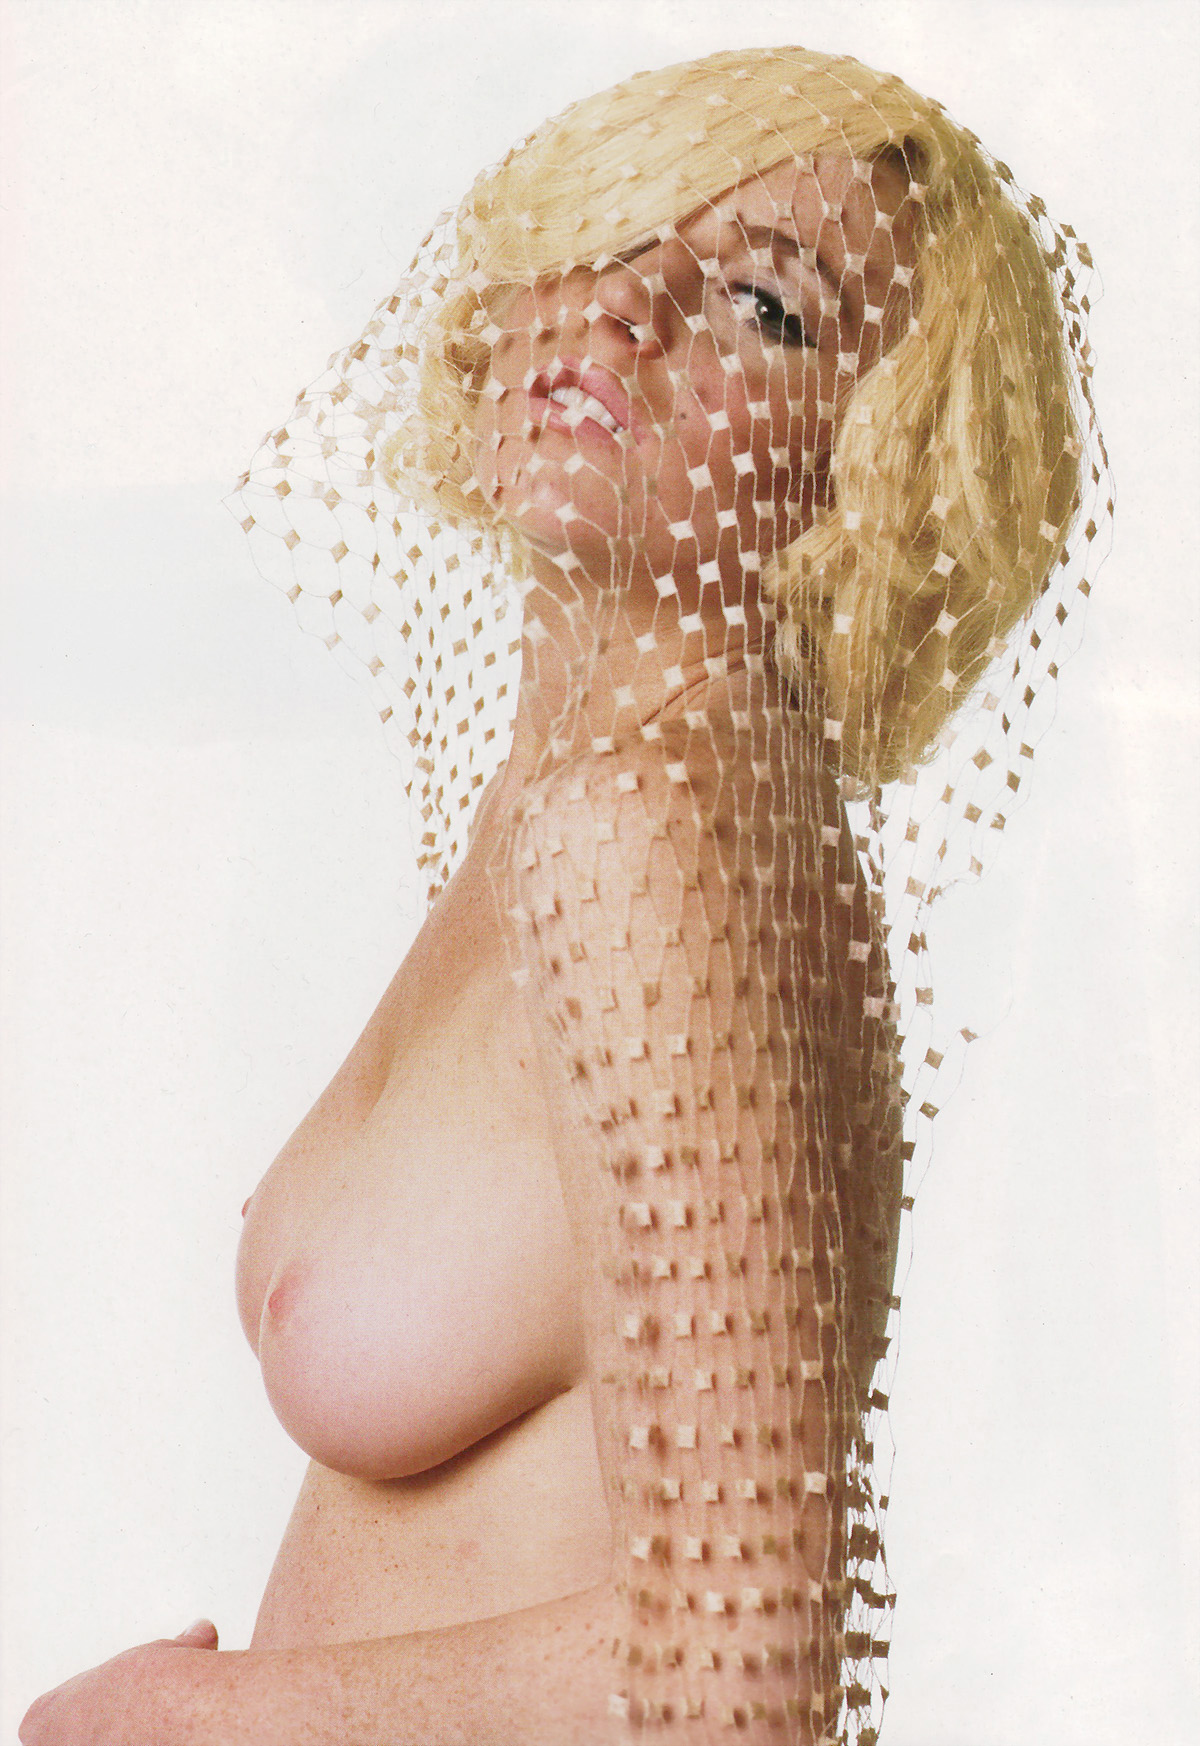 Can recommend Lindsey lohan xxx photos all fantasy